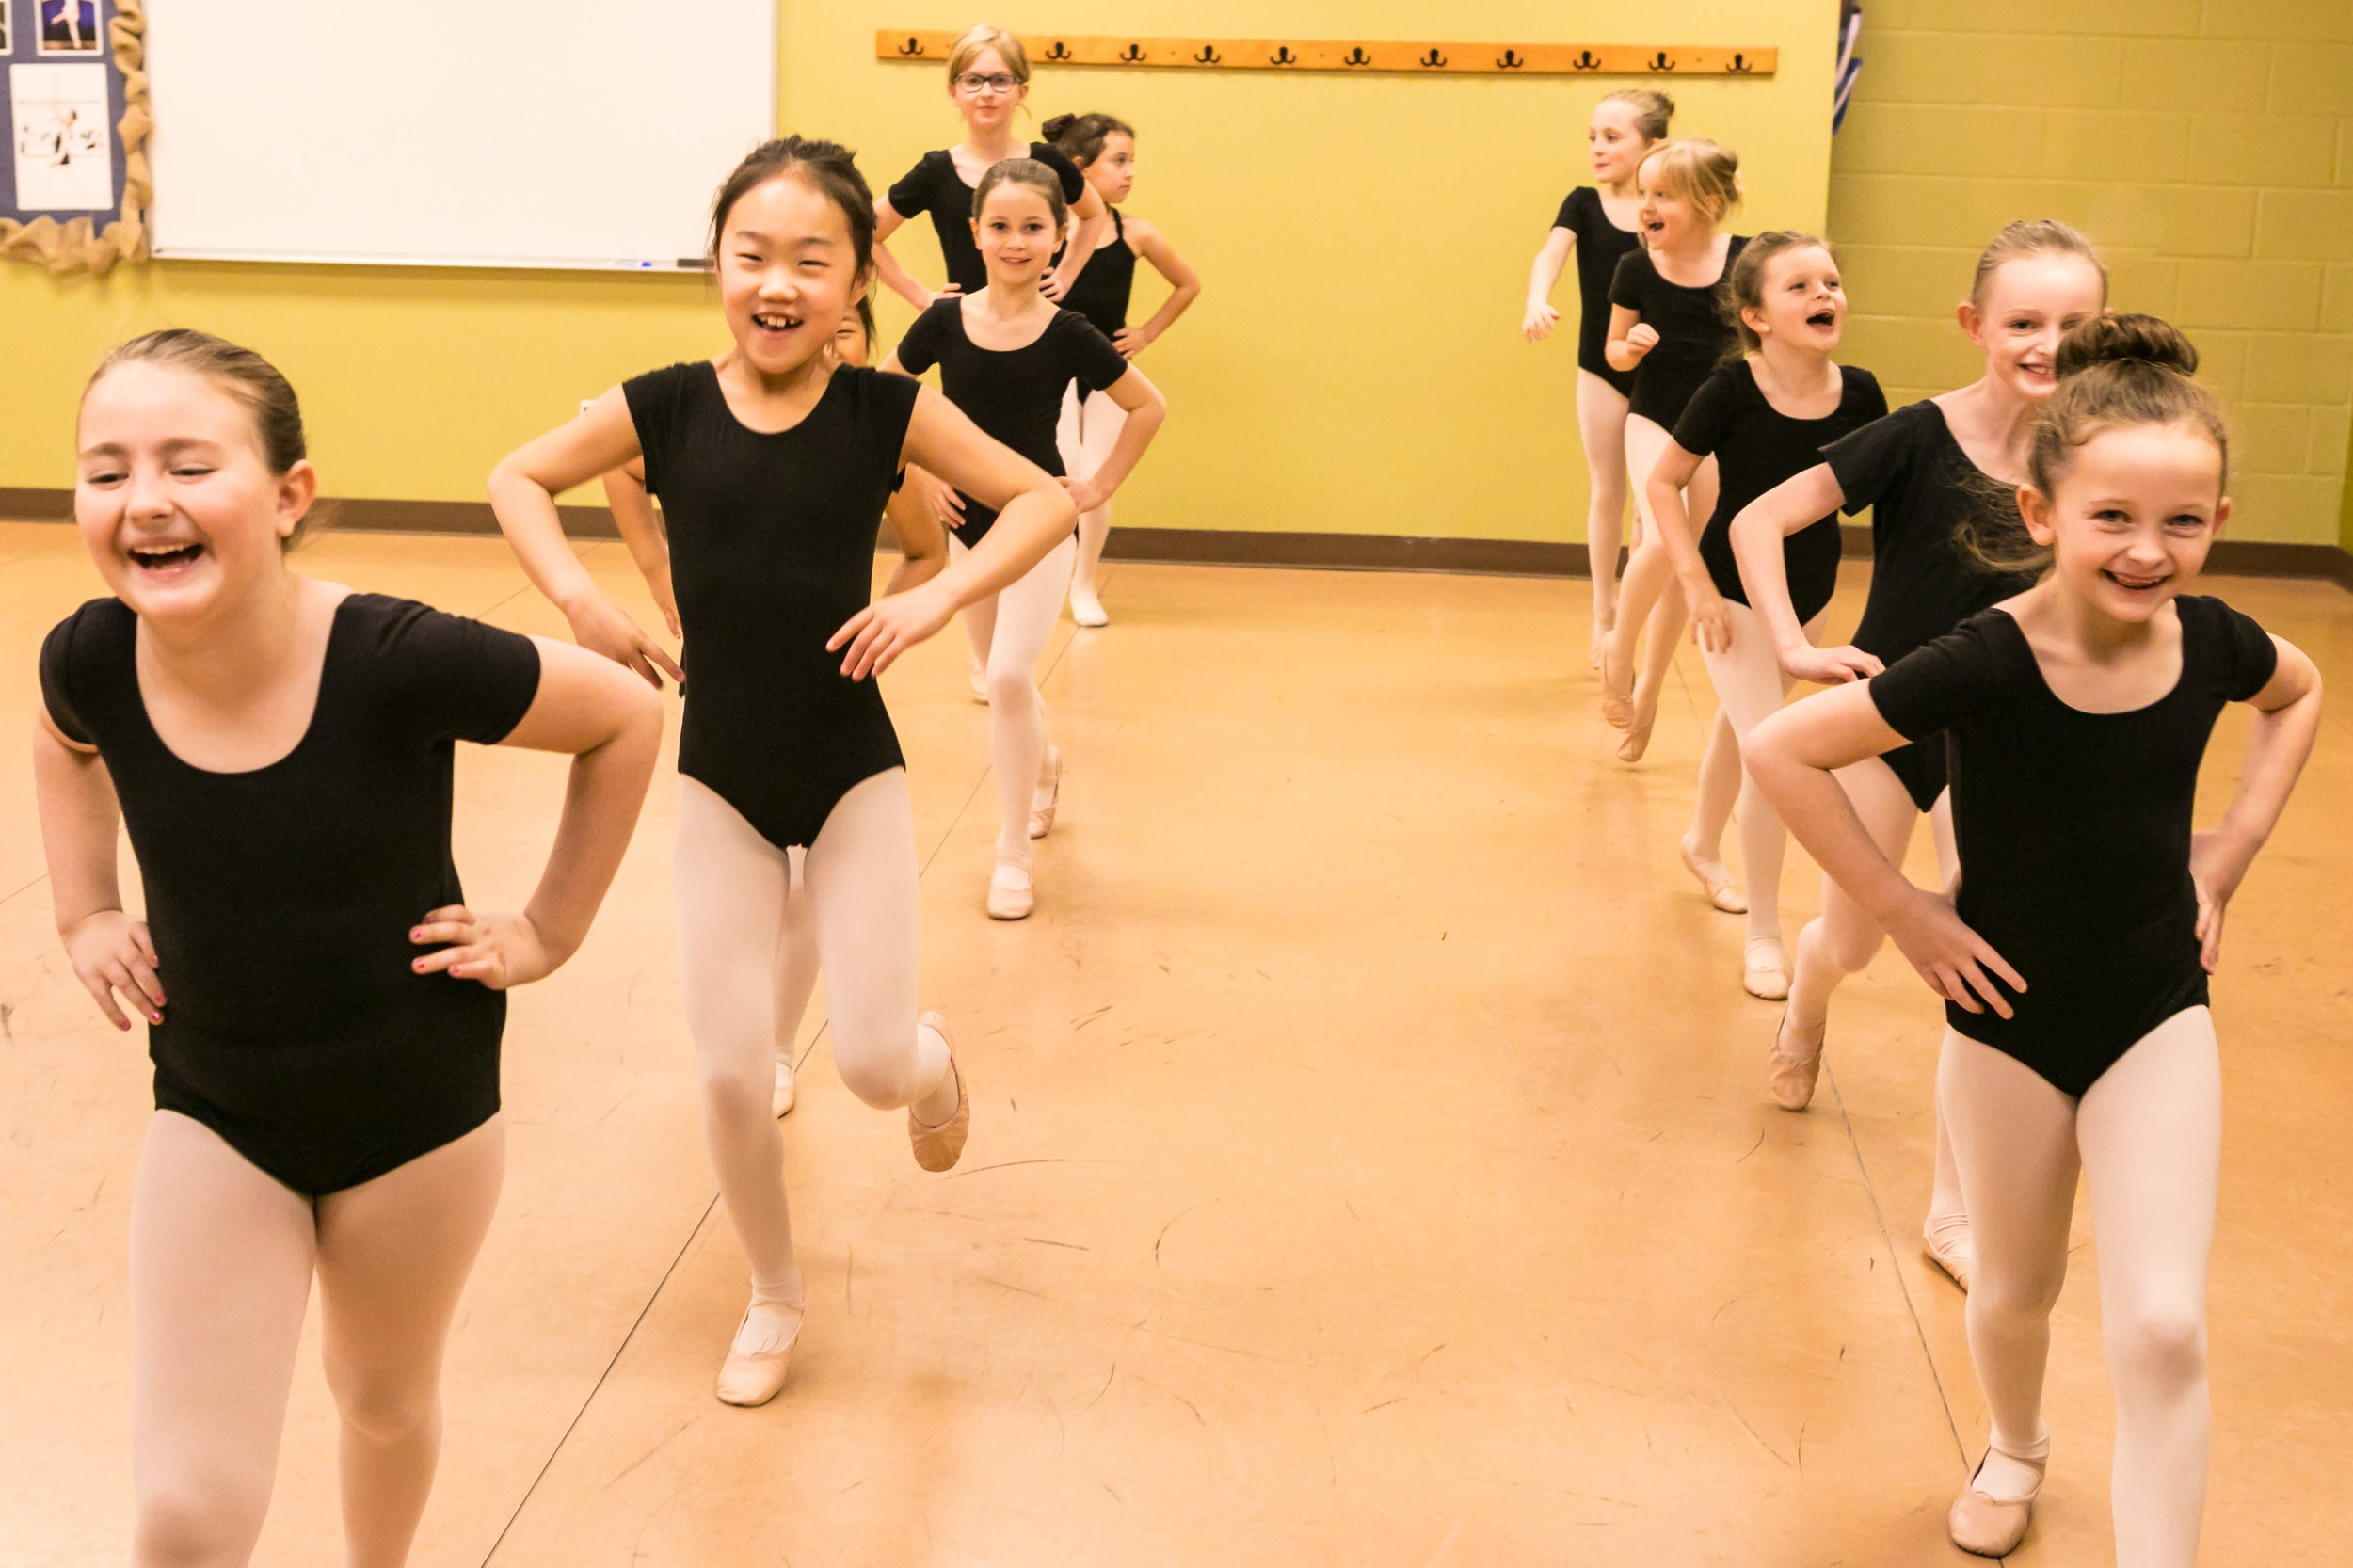 HOMESCHOOL CLASSES   To serve our homeschool community, we offer weekly dance classes scheduled during the school day. Plus, we offer family use of our homeschool room, play area, and playground on site and a 10% off sibling discount.